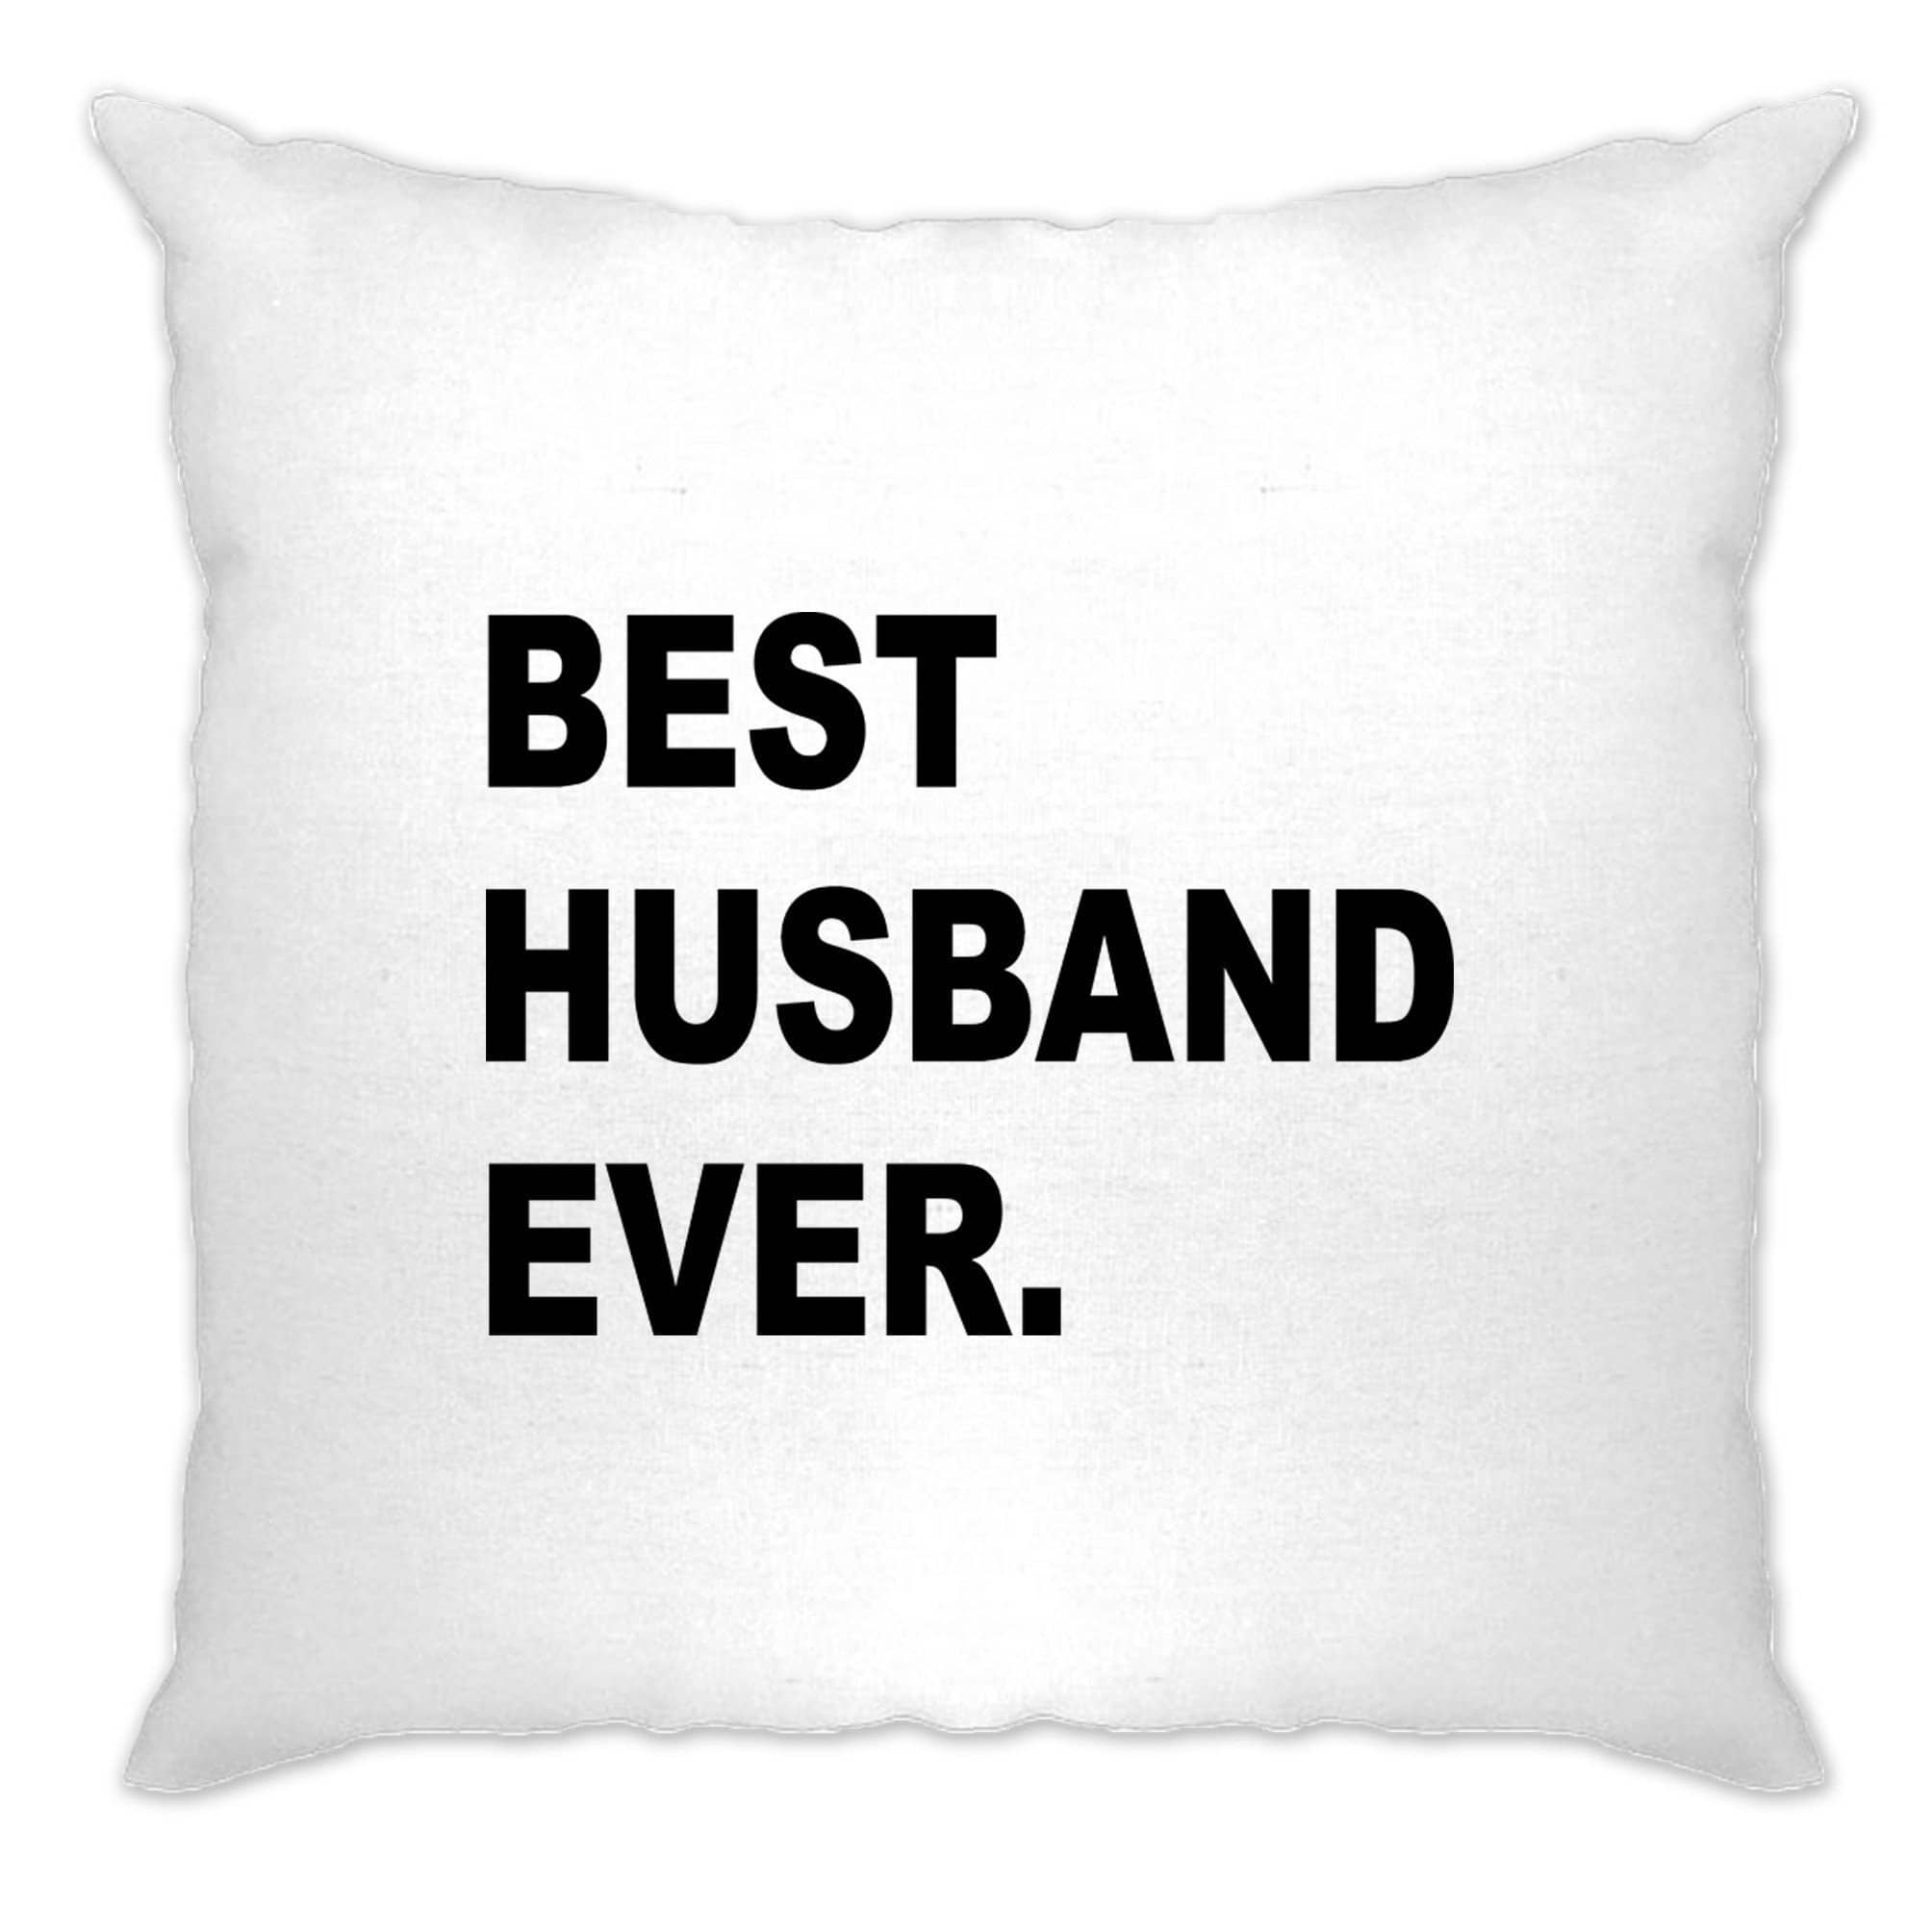 Best Husband Ever Cushion Cover Marriage Family Slogan